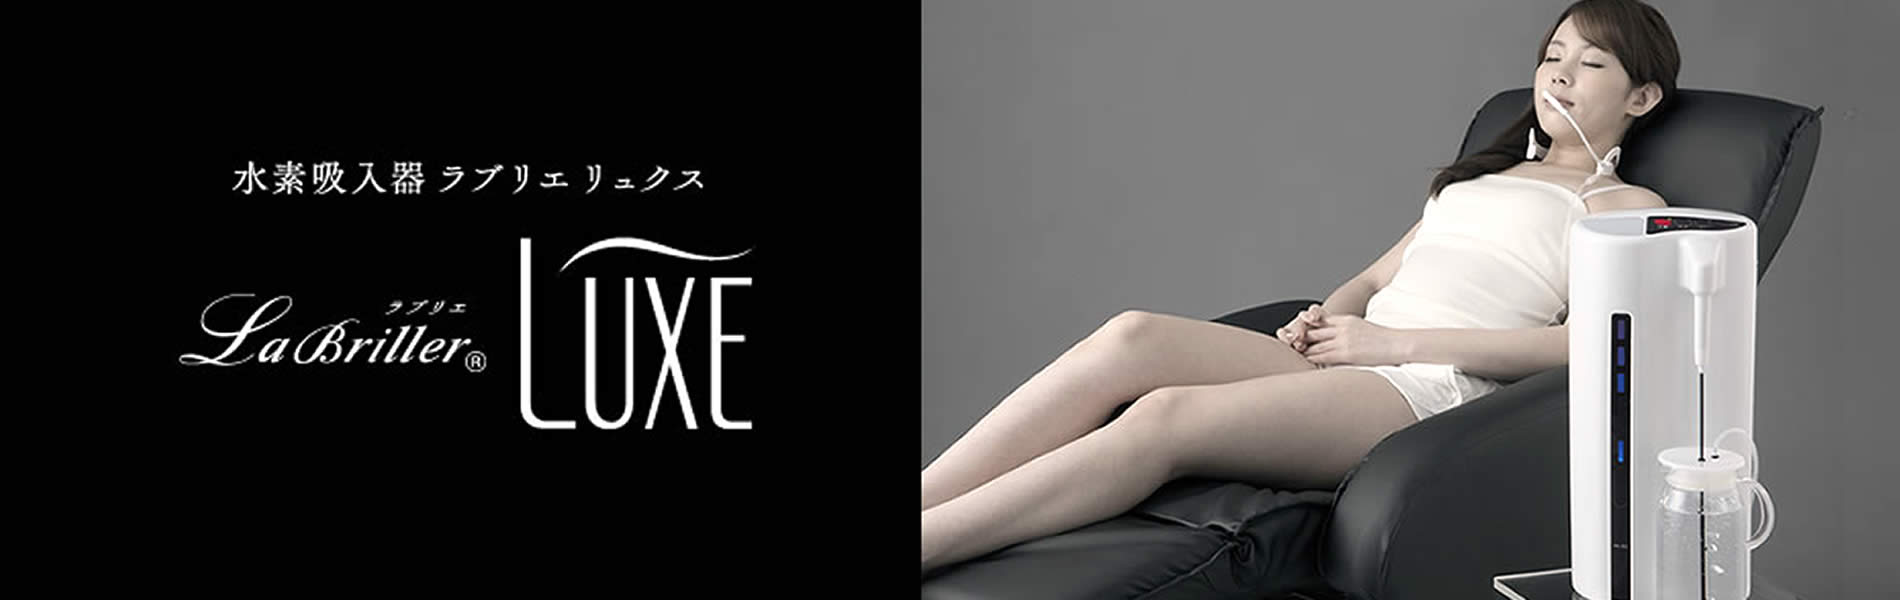 luxe1